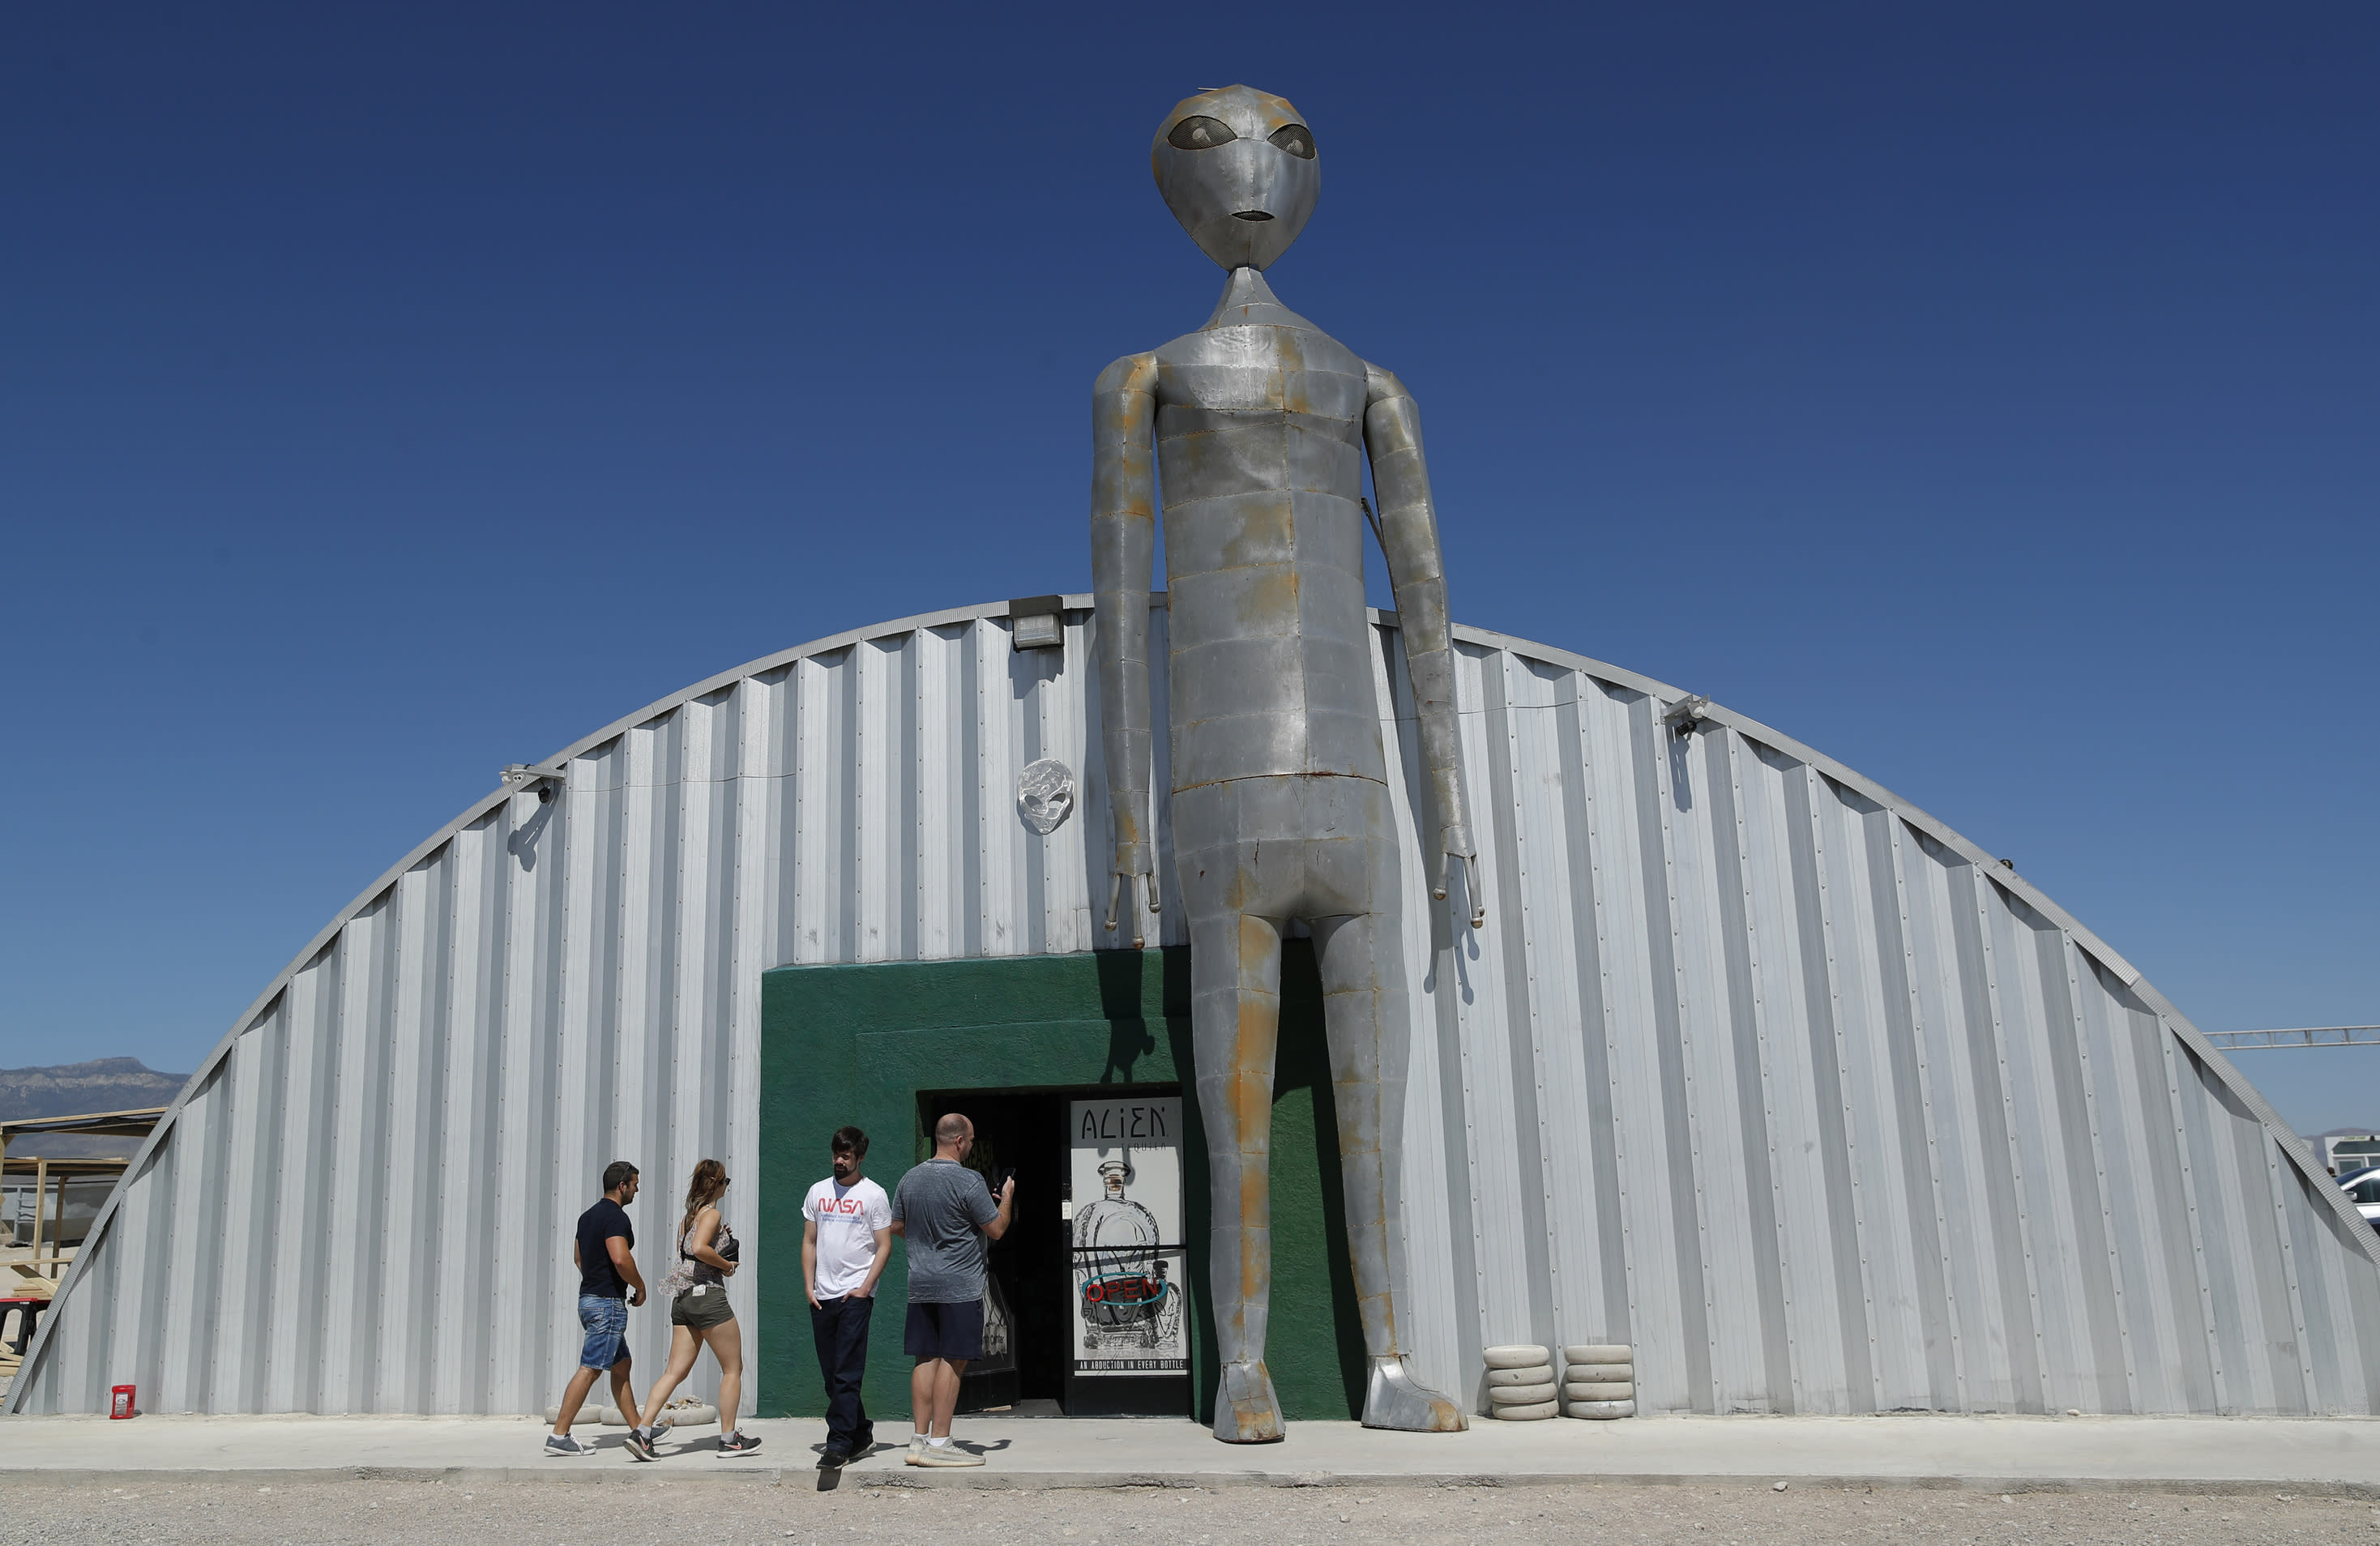 WEEKEND: Nevada desert towns prep for possible 'Storm Area 51' influx...